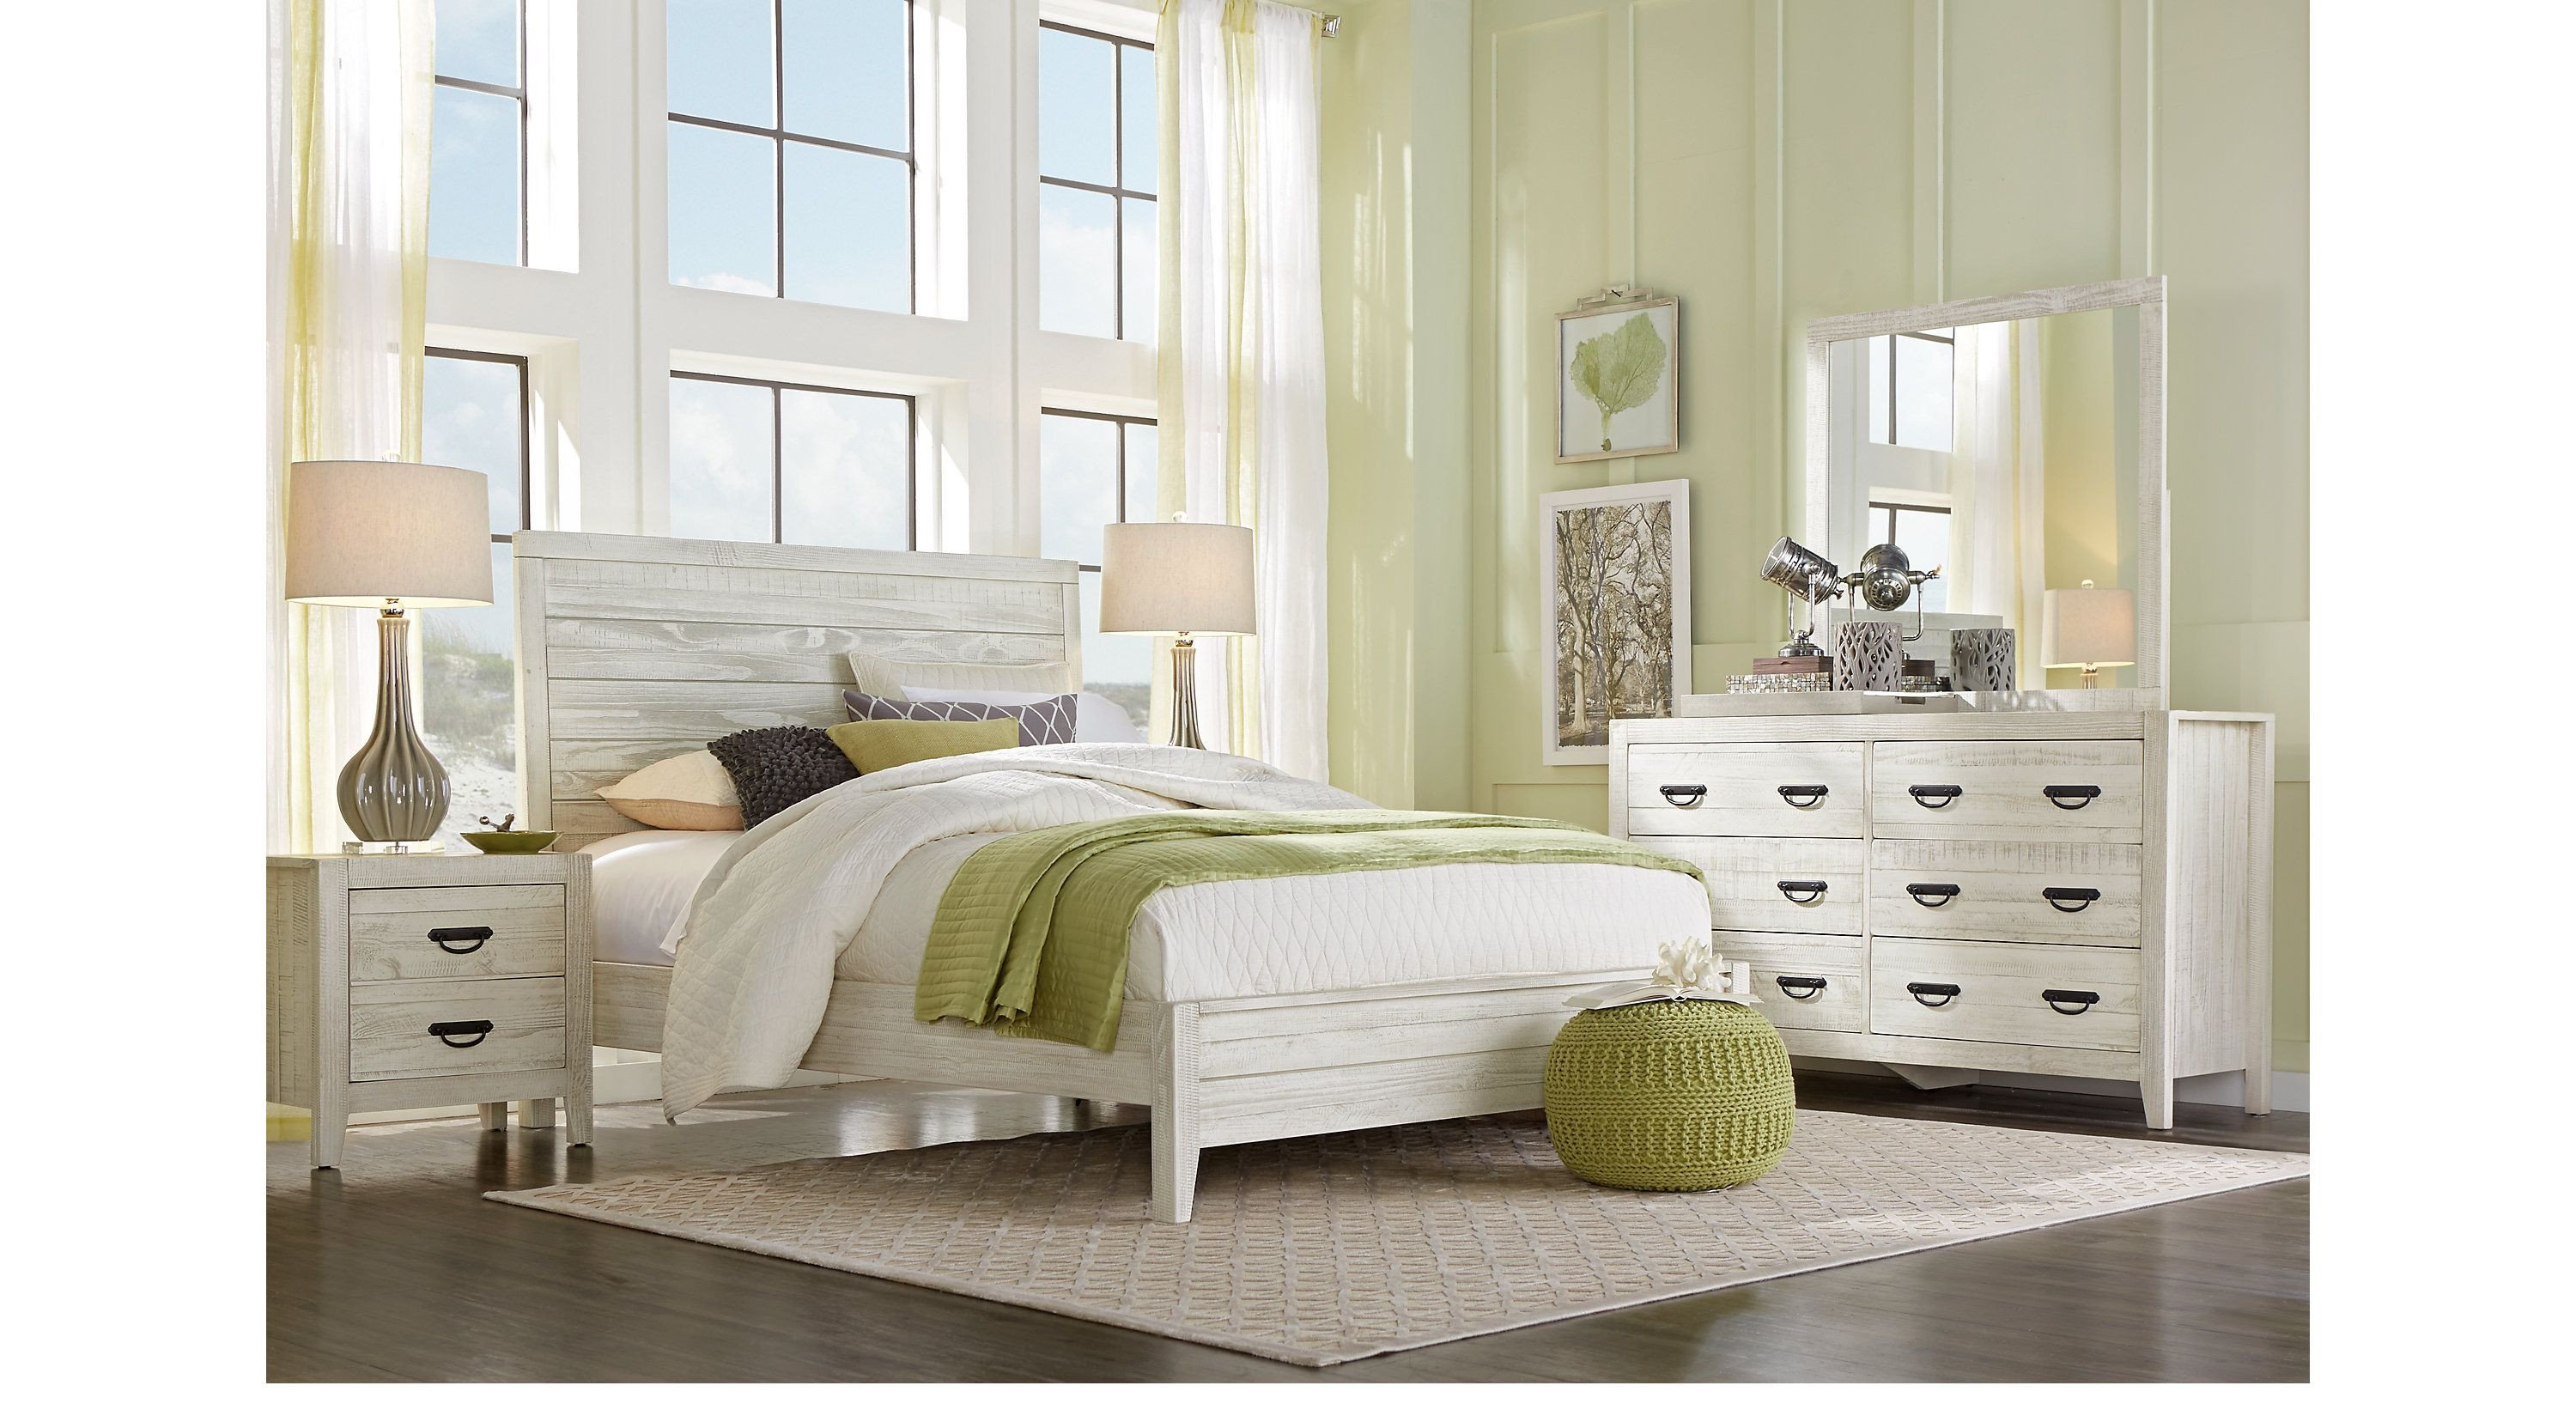 Off White Bedroom Furniture Luxury Distressed F White Bedroom Furniture